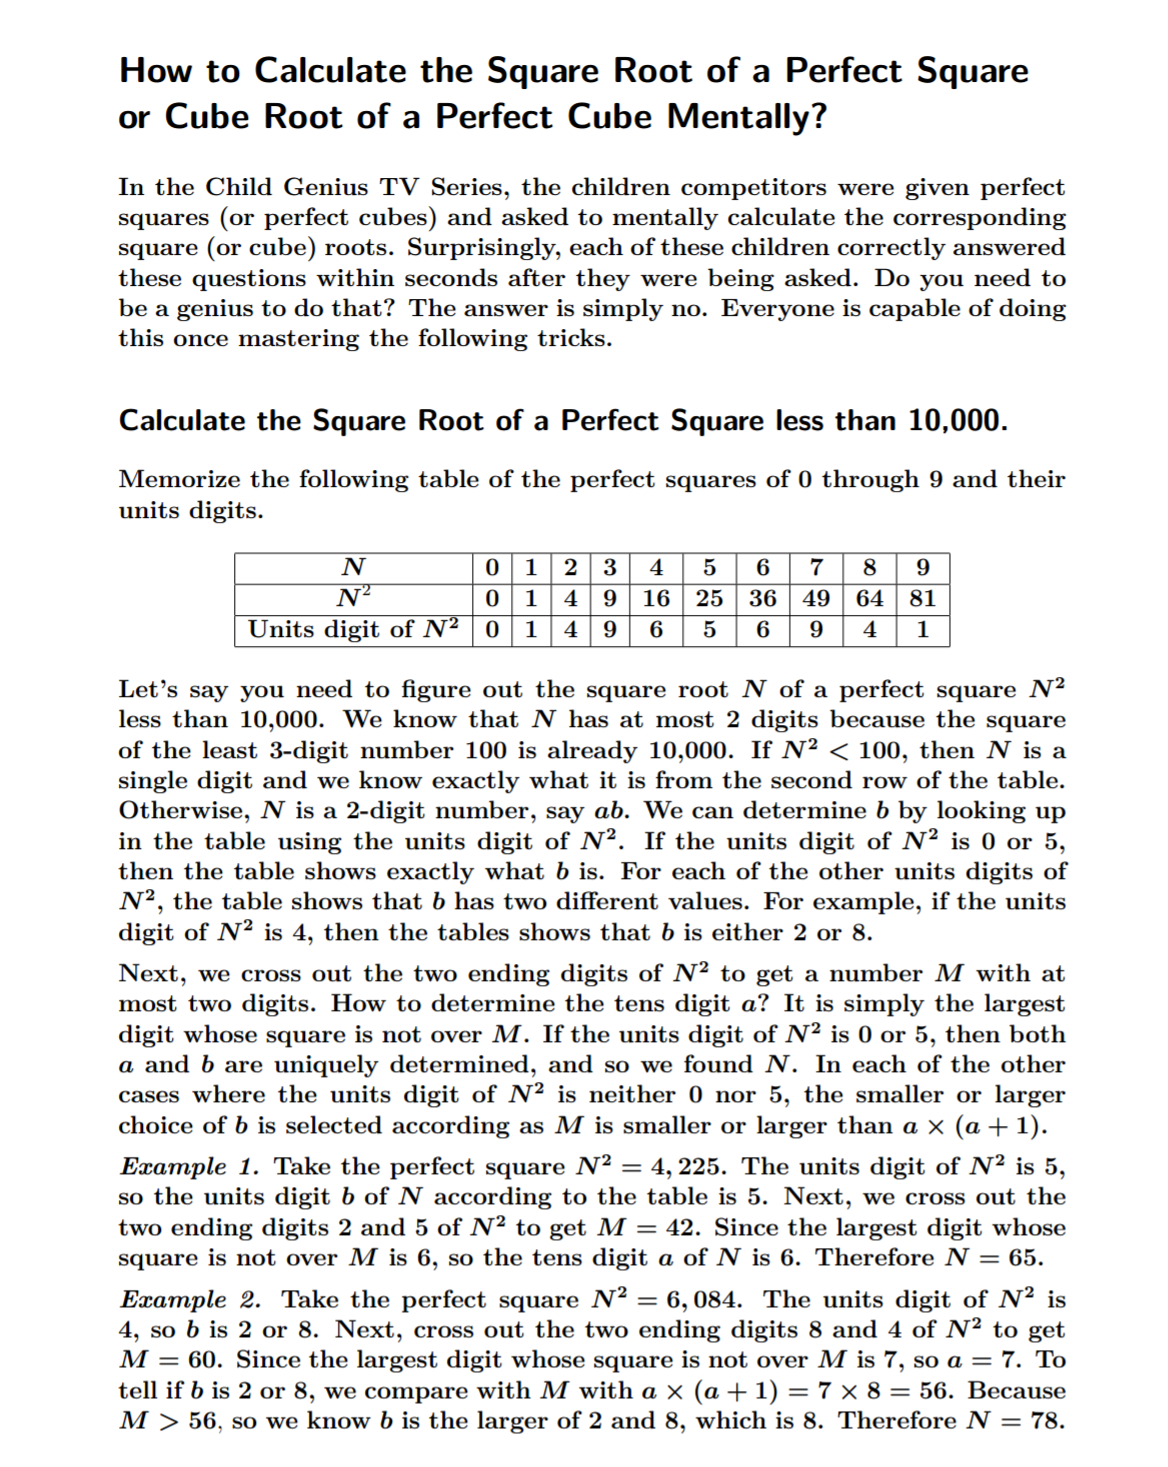 How to Calculate the Square Root of a Perfect Square or Cube